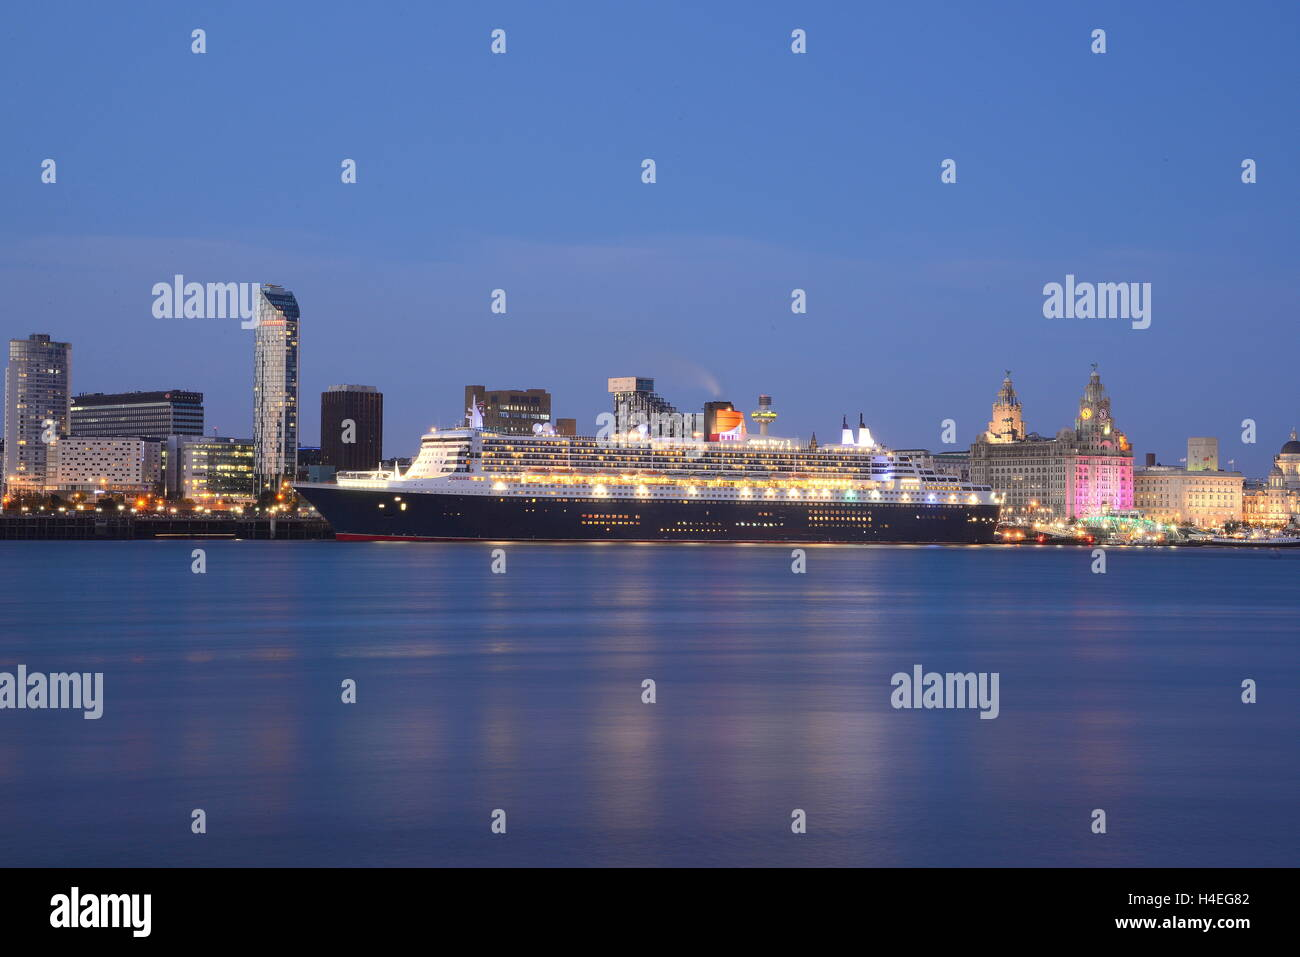 The Queen Mary 2 berthed at Liverpool Cruise Terminal in July 2015. - Stock Image